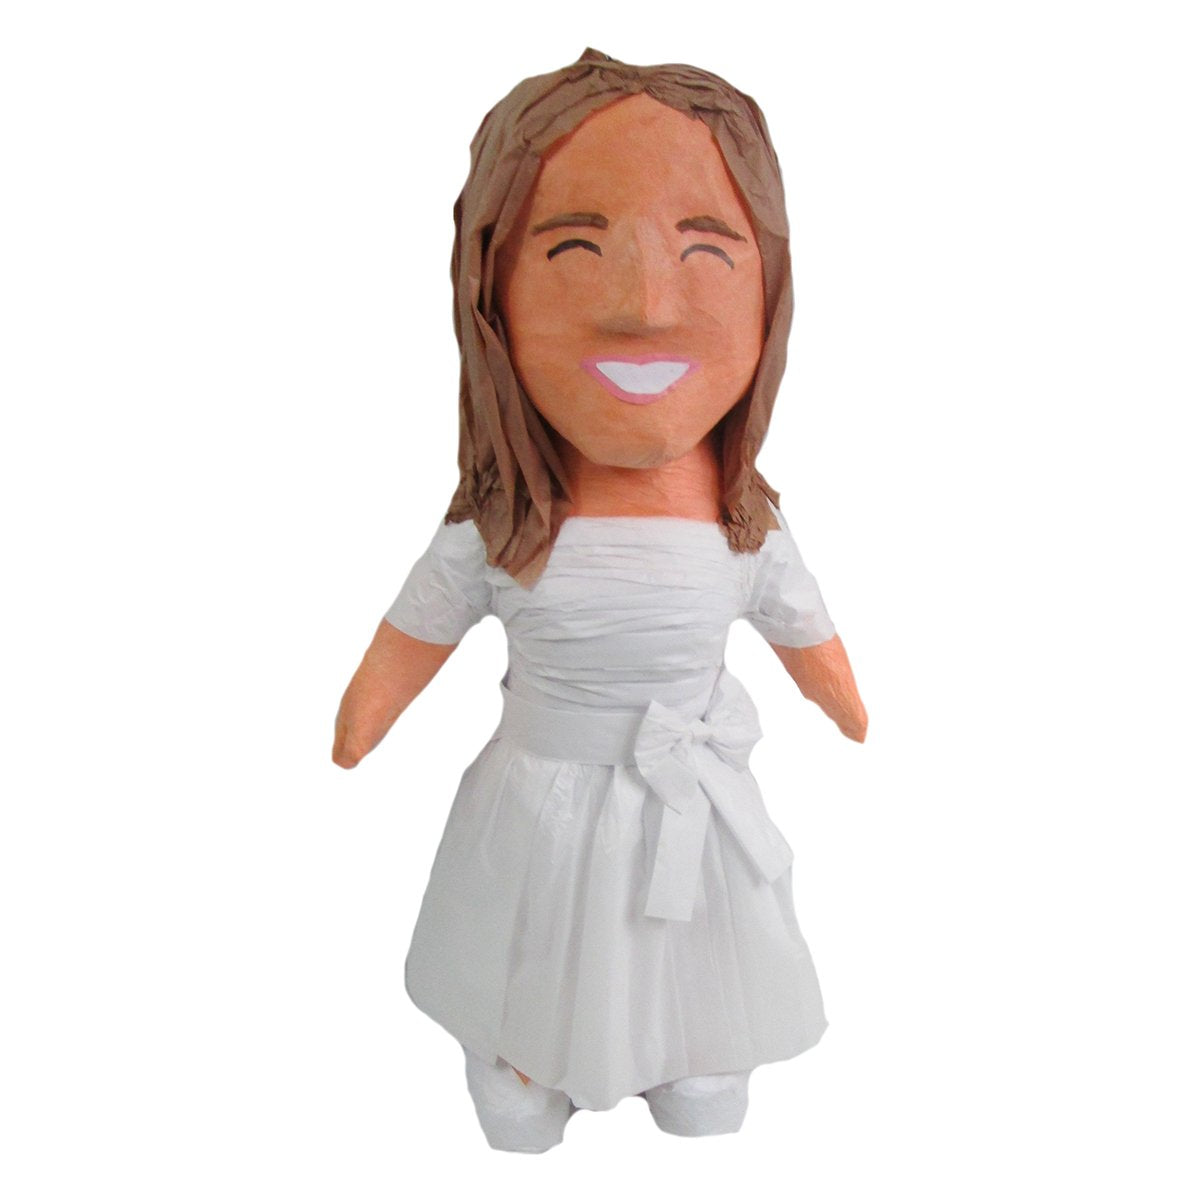 CUSTOM BRIDE PINATA